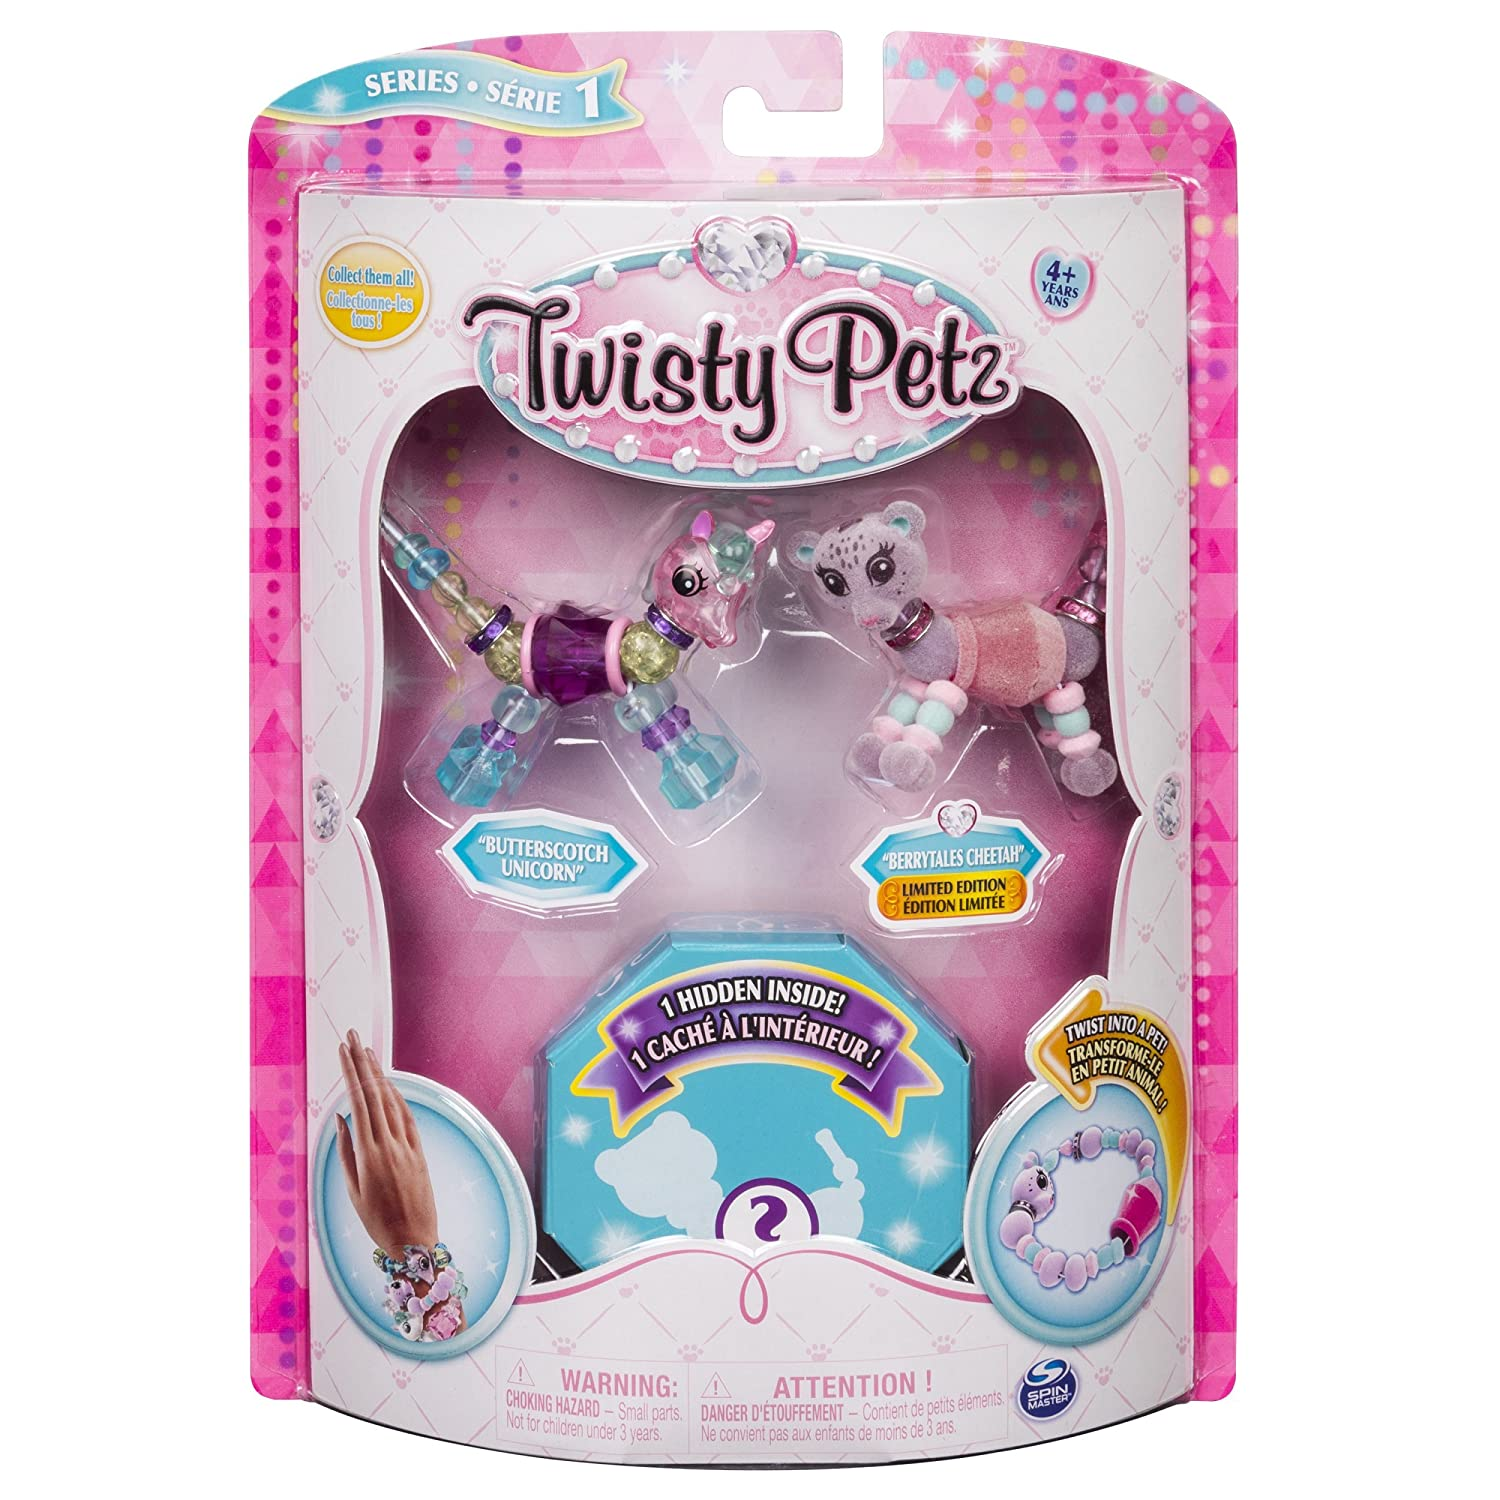 Twisty Petz – 3-Pack - Butterscotch Unicorn, Berry Tales Cheetah and Surprise Collectible Bracelet Set for Kids Spin Master Ltd 20100958